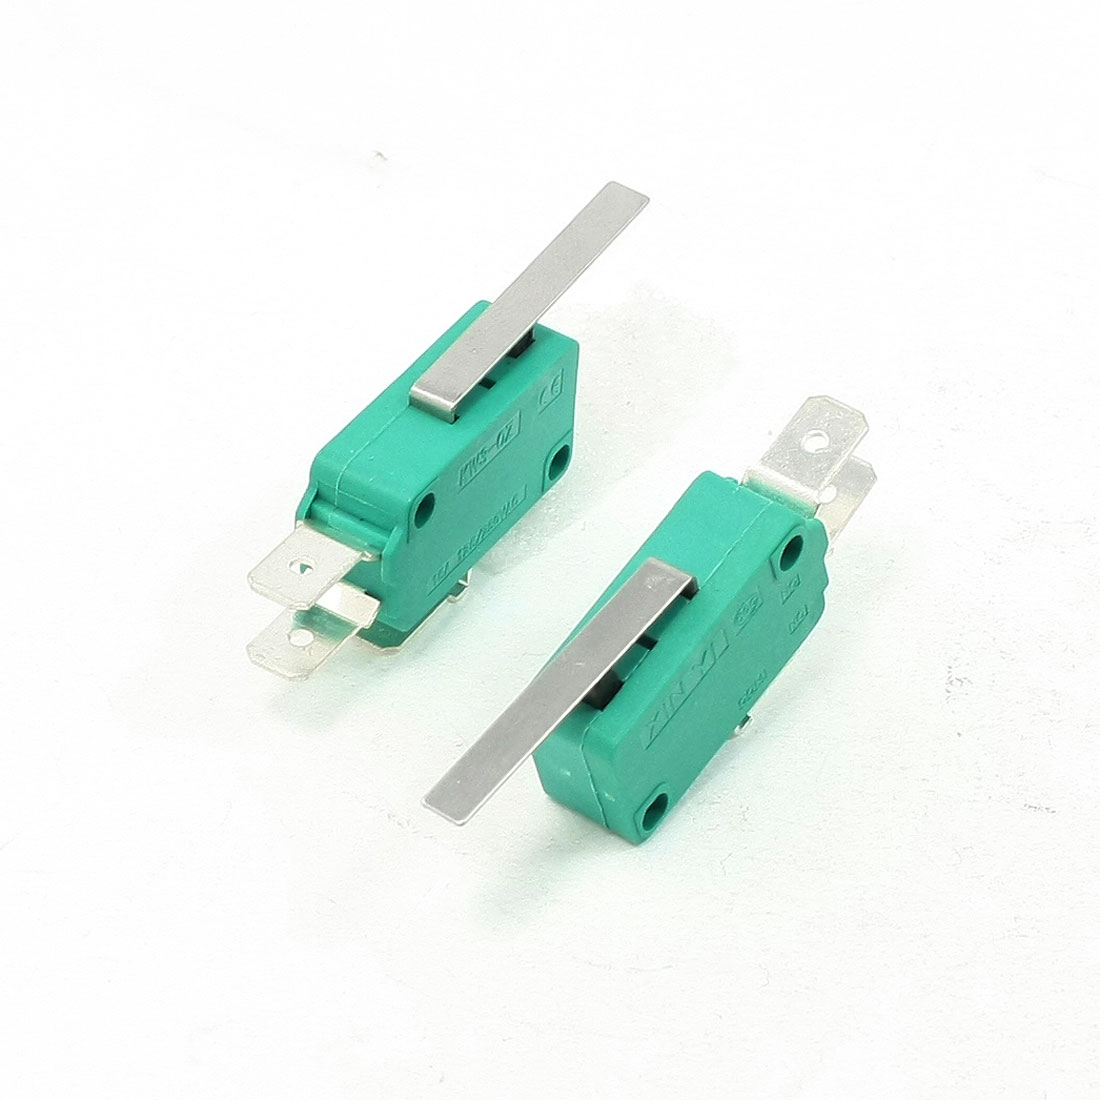 2 Pcs AC 250V 16A SPDT Short Straight Hinge Lever Limit Micro Switch Green